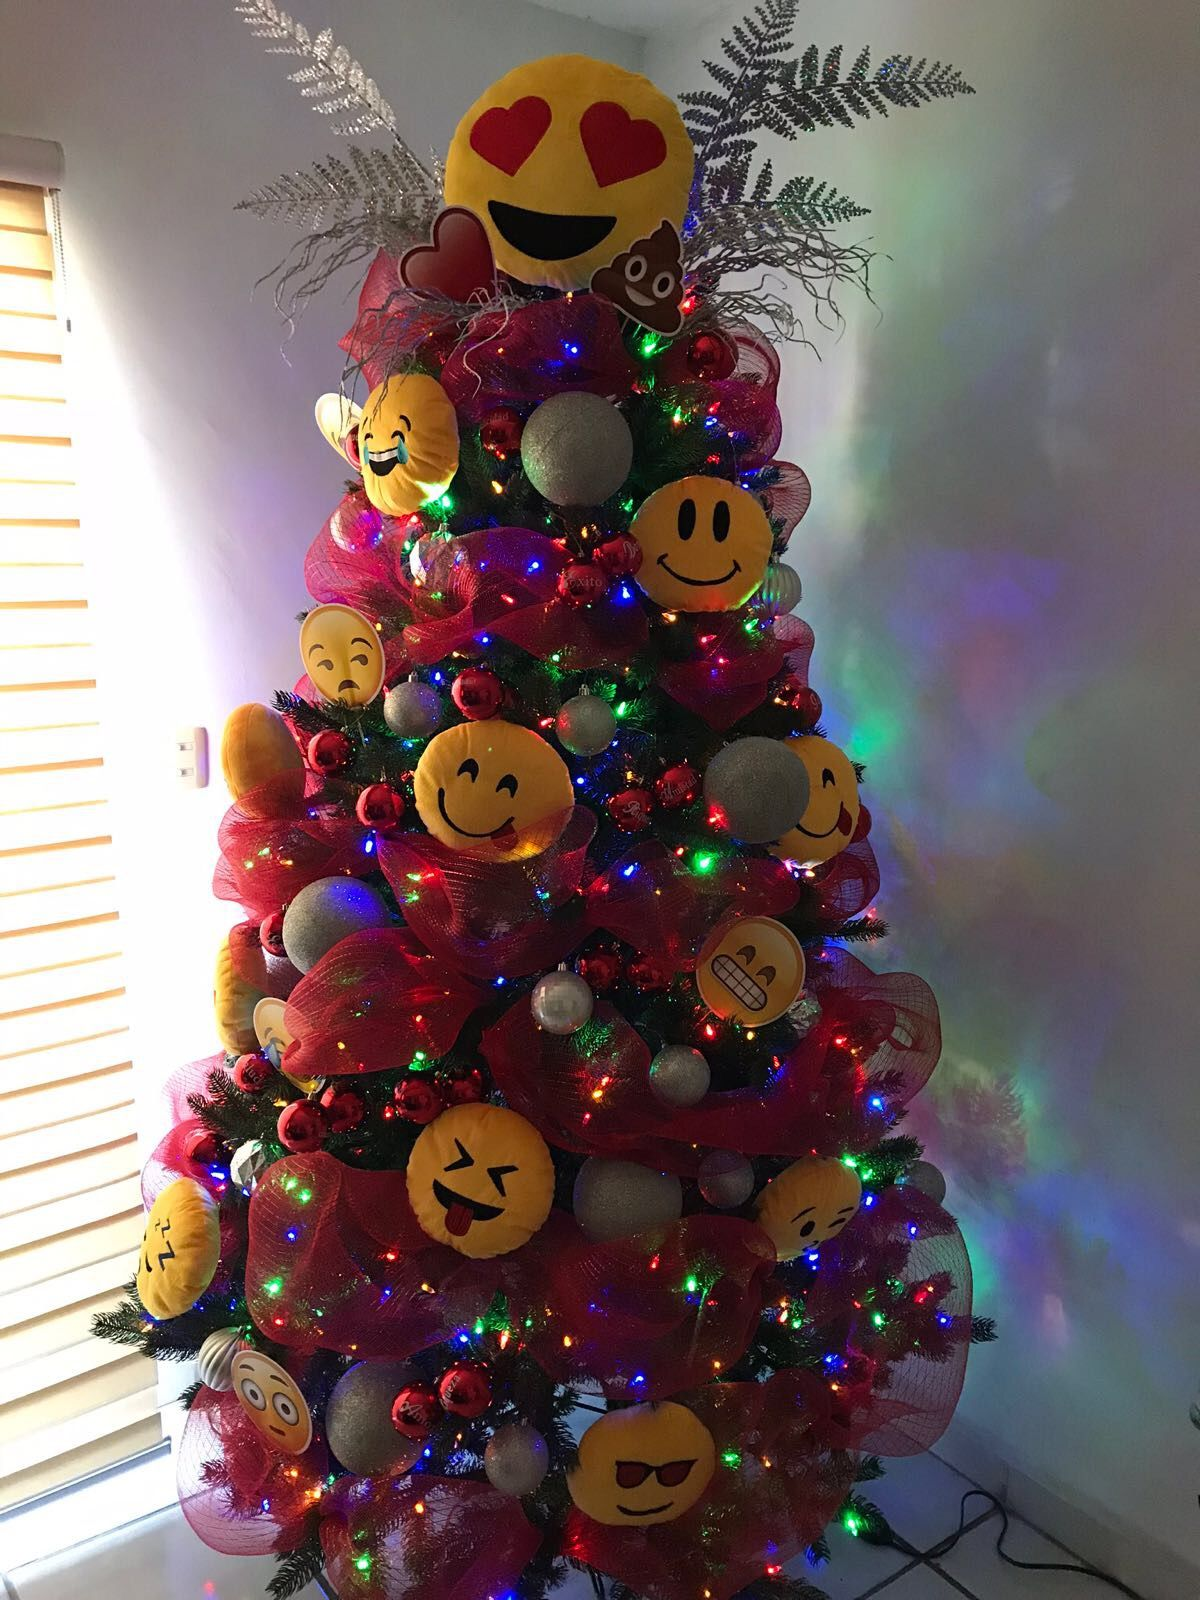 Pin By Catarina Oliveira On Emoji Christmas Tree Emoji Christmas Tree Emoji Christmas Christmas Decorations